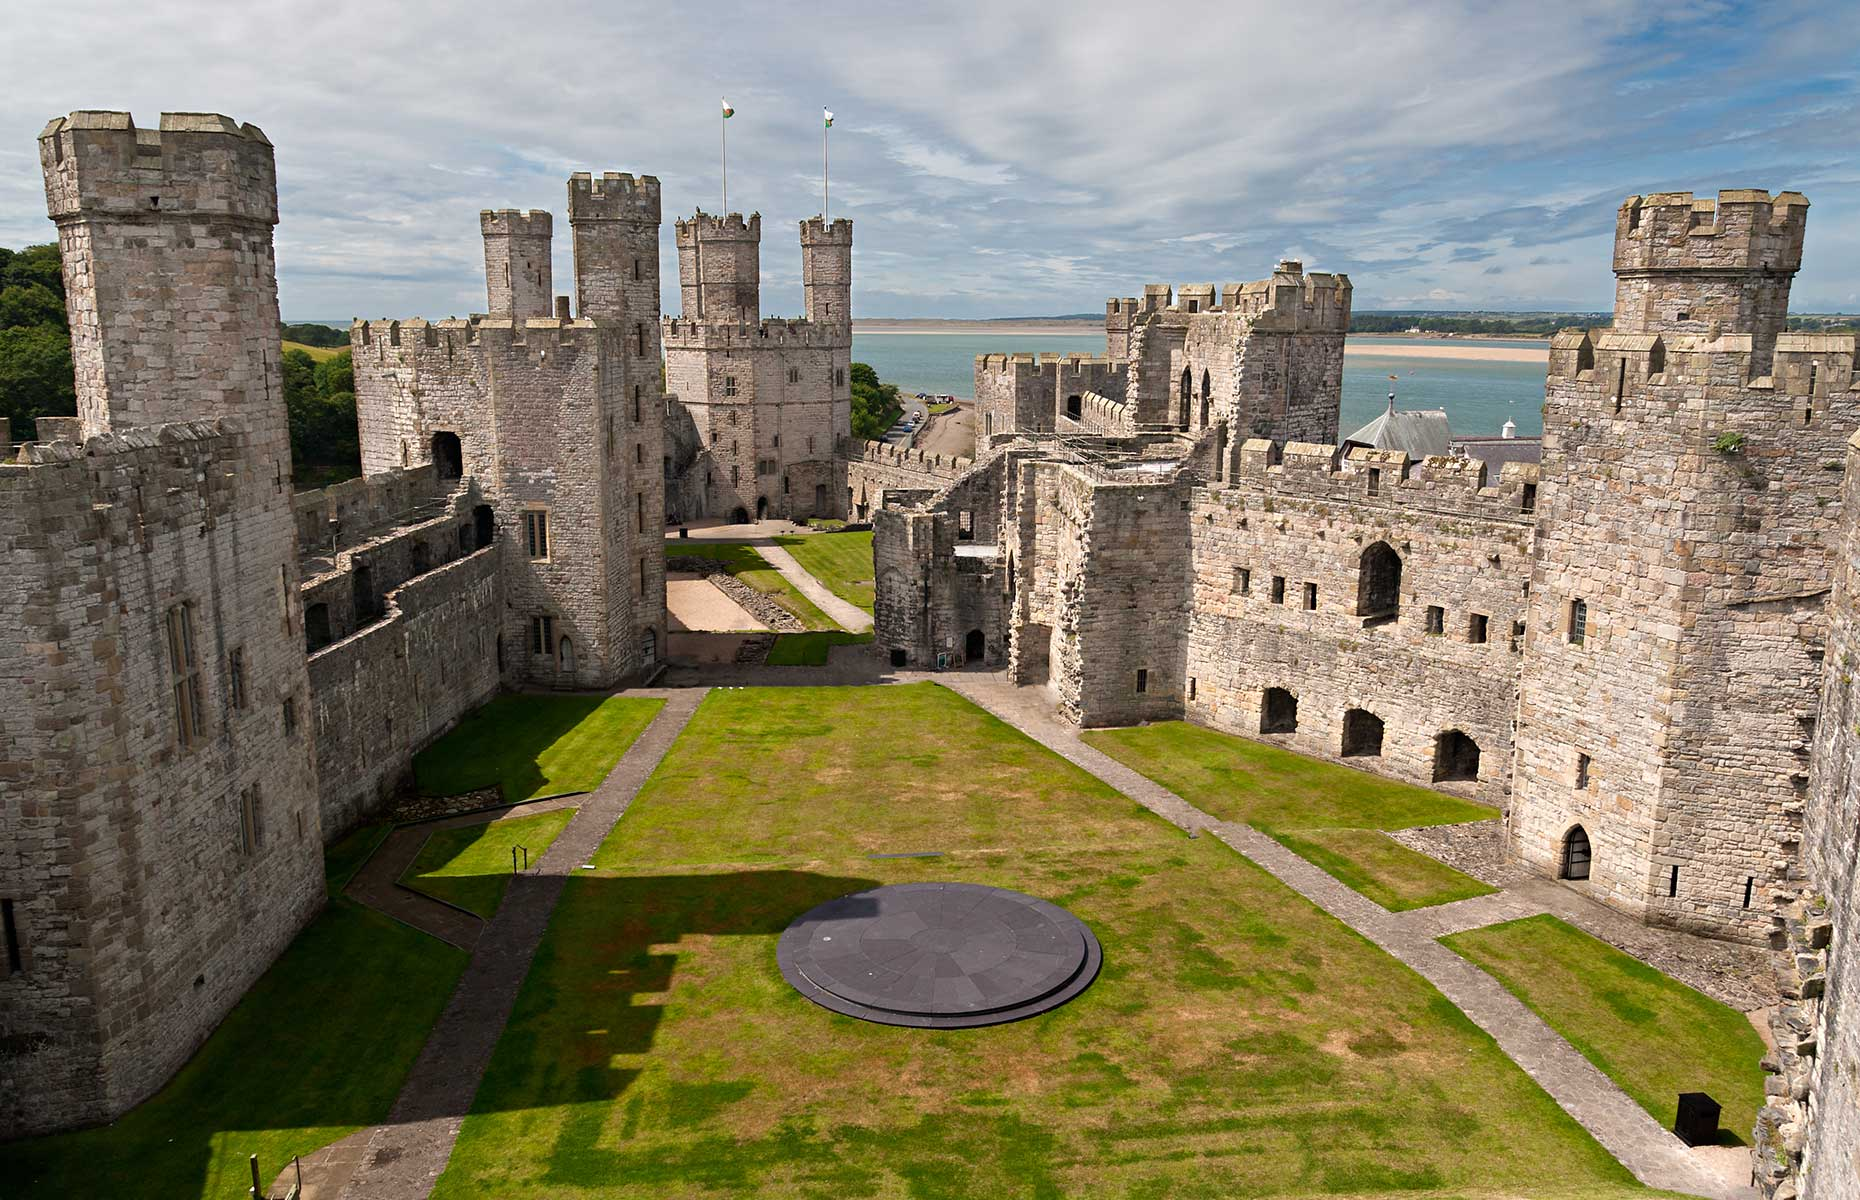 Caernarfon Castle, looking down in to the central courtyard